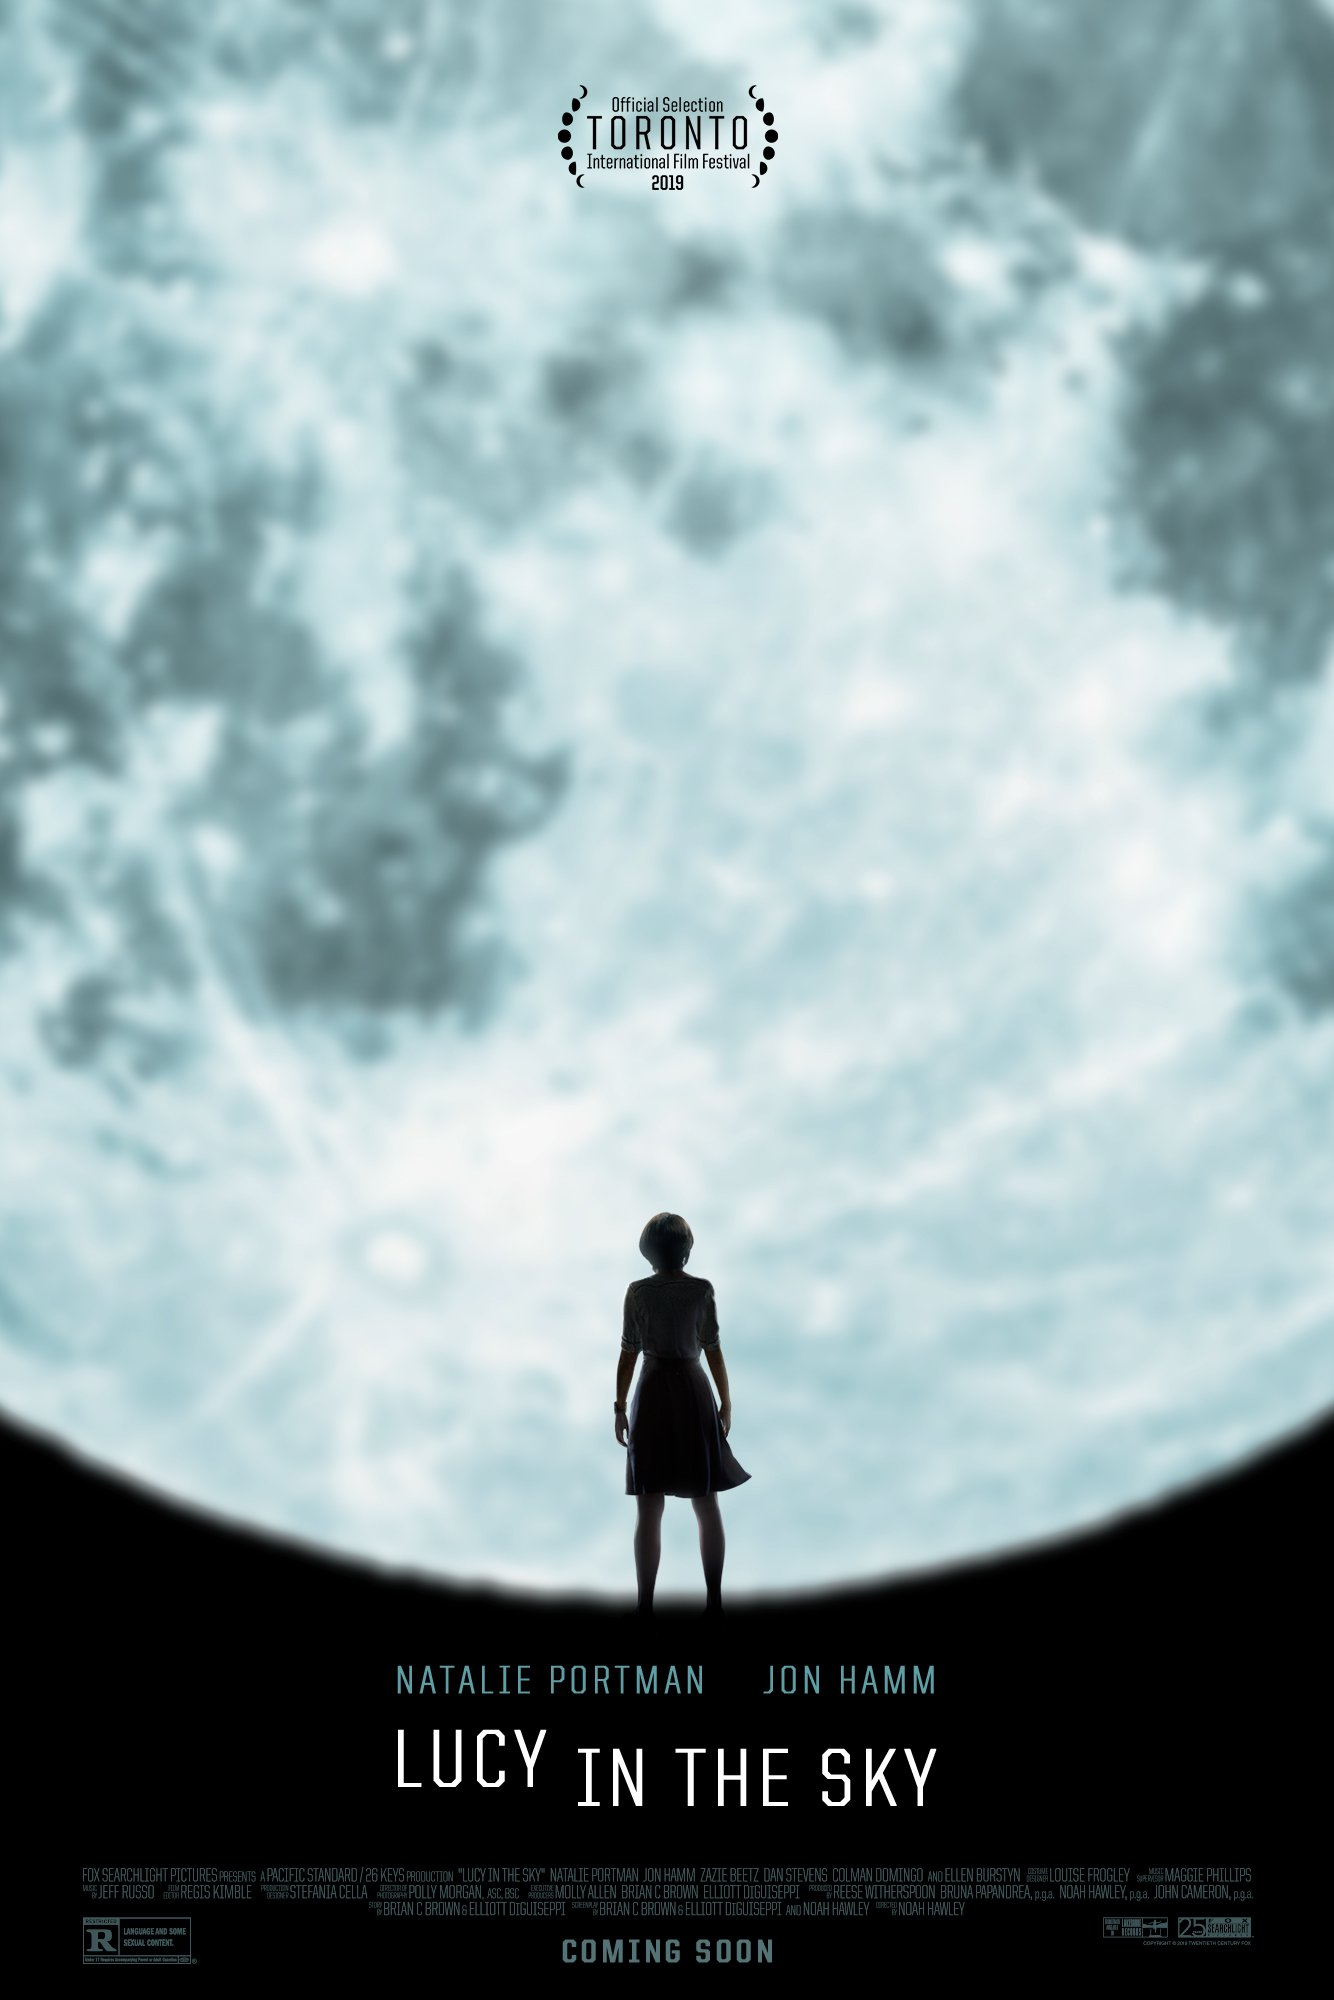 Lucy In The Sky - Jeff Russo